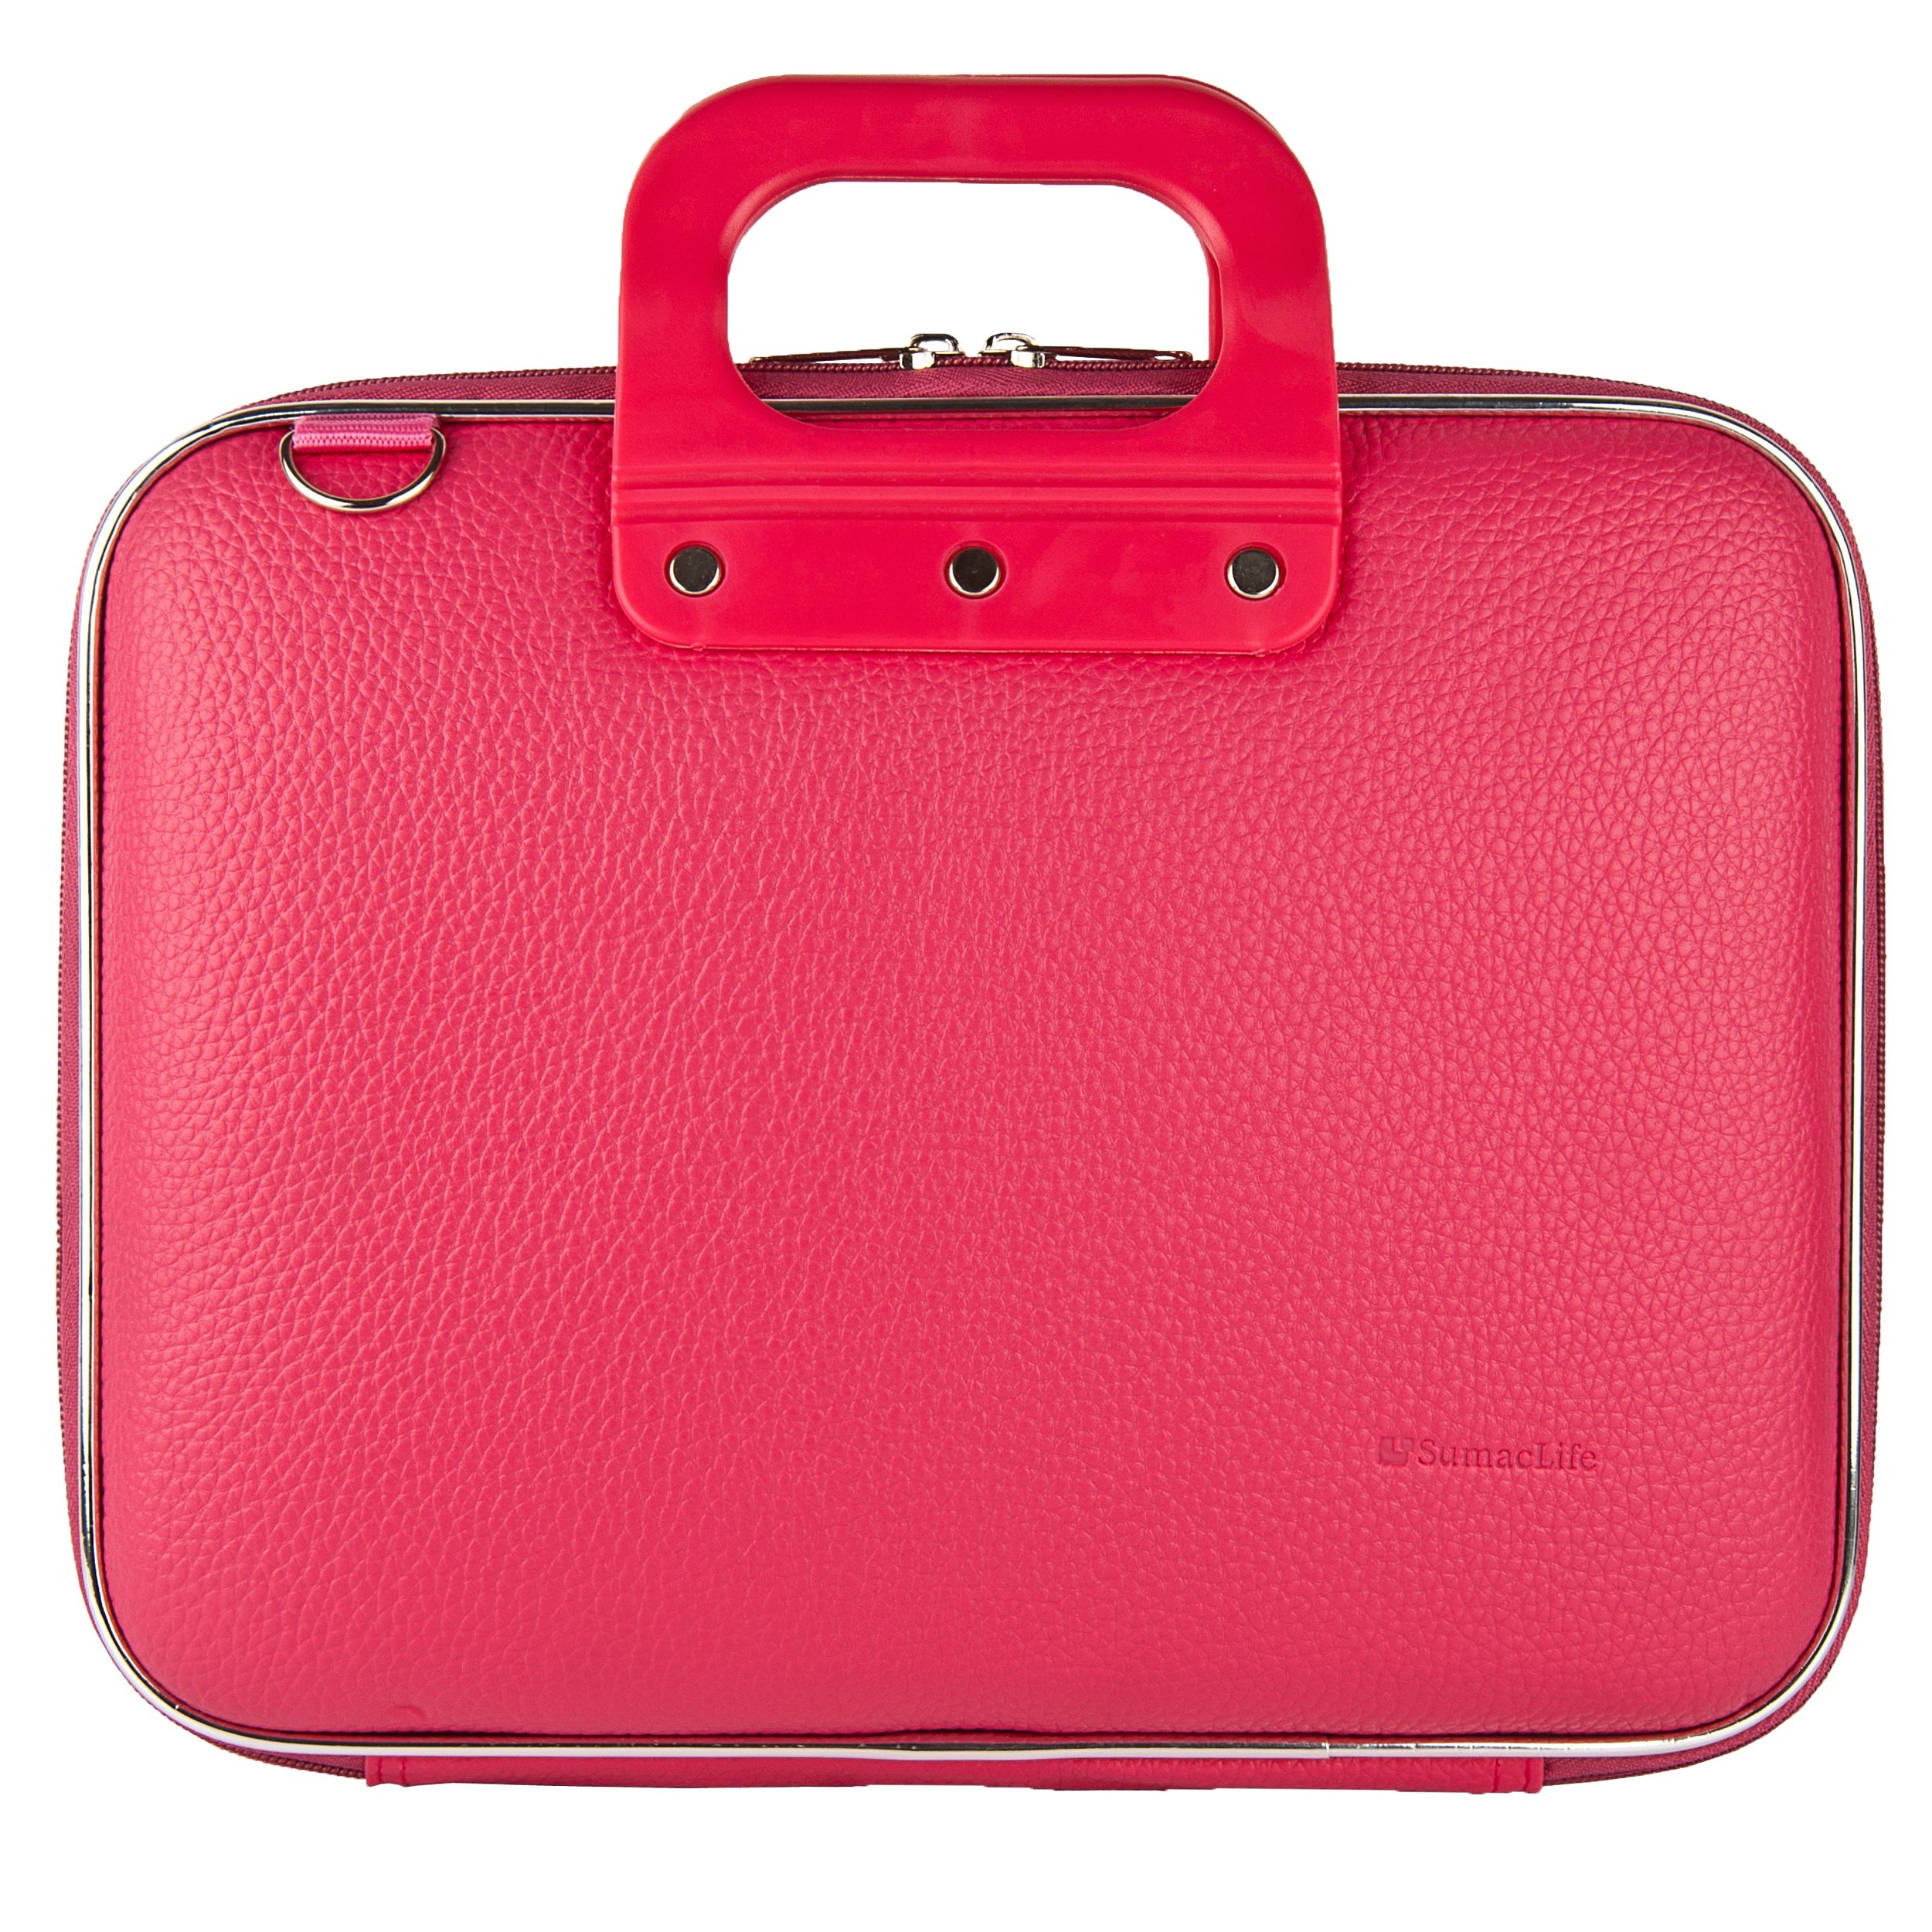 Pink Shoulder Bag Briefcase for Sylvania 10-Inch/9 Inch Swivel Screen Portable DVD/CD/MP3 Player